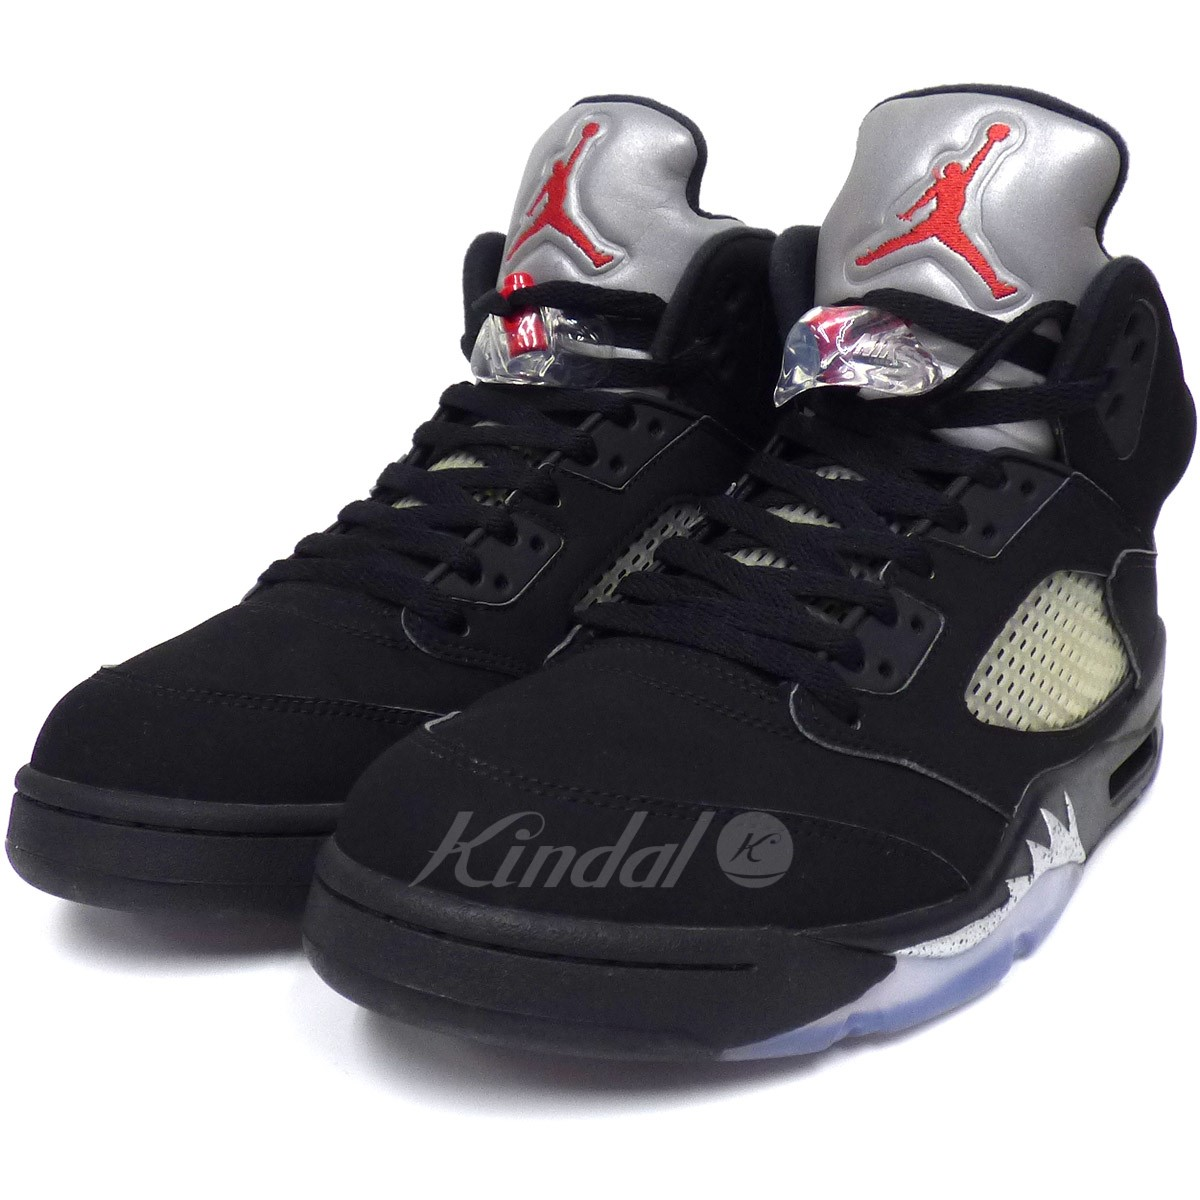 brand new 78217 7a20c NIKE Air Jordan 5 Retro OG Black Metallic Air Jordan sneakers black size:  US10. 5 (28.5cm) (Nike)